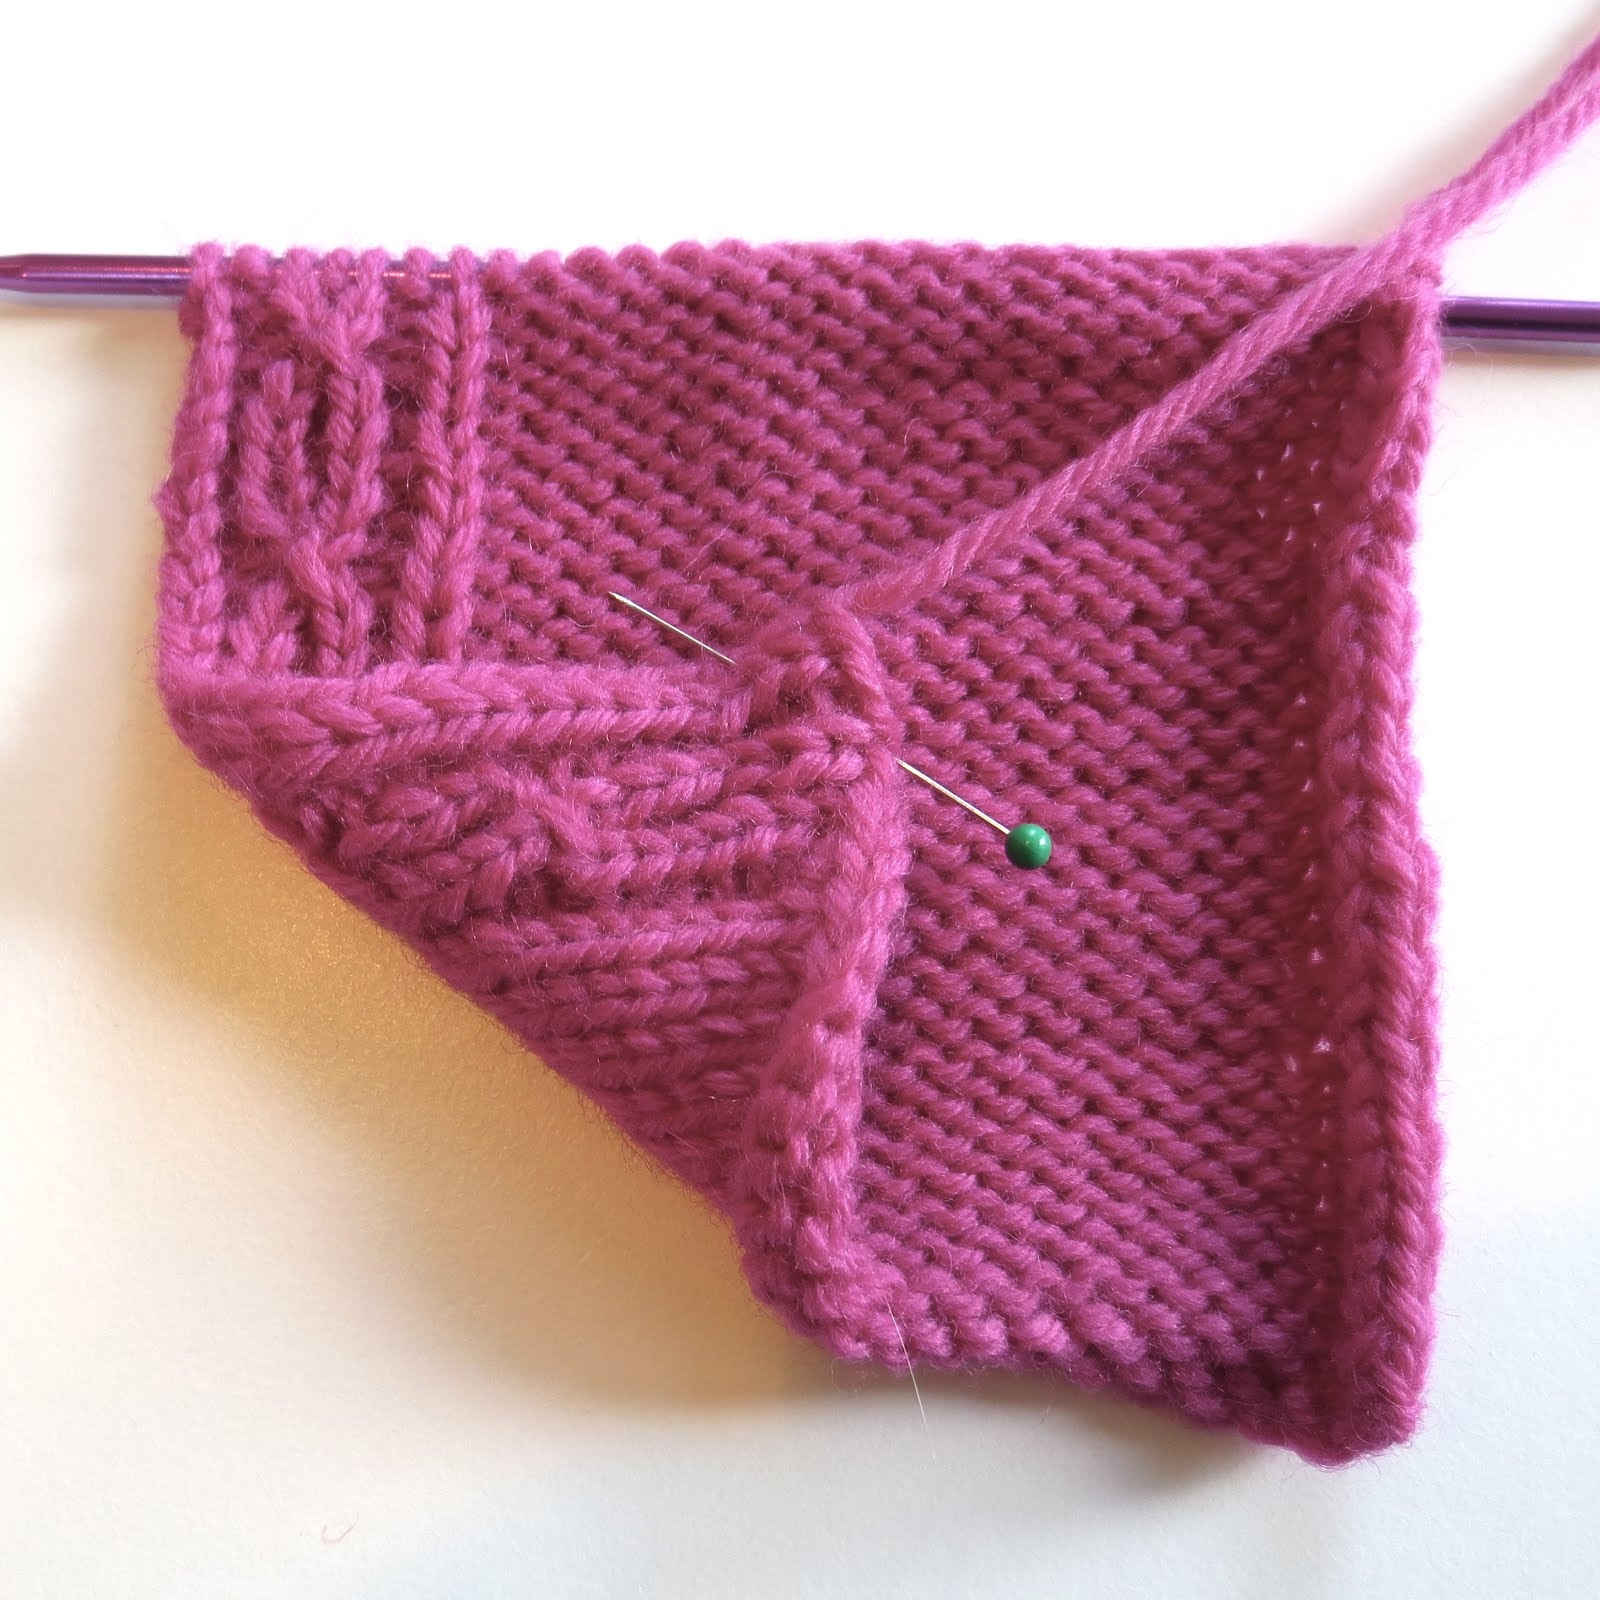 TECHknitting: Afterthought reversible cable-ette border